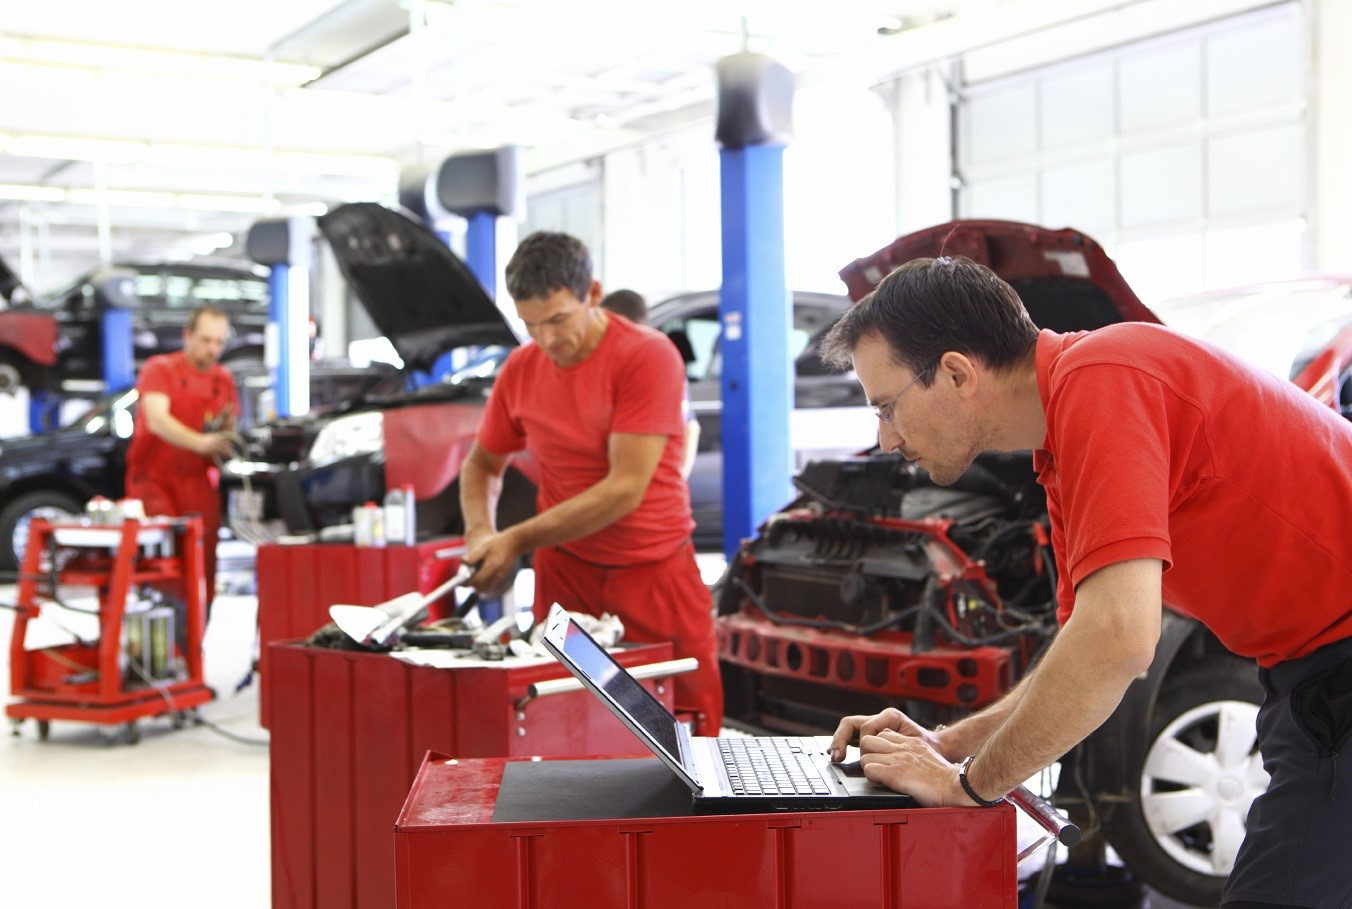 We'll Take Excellent Care of Your Vehicle!